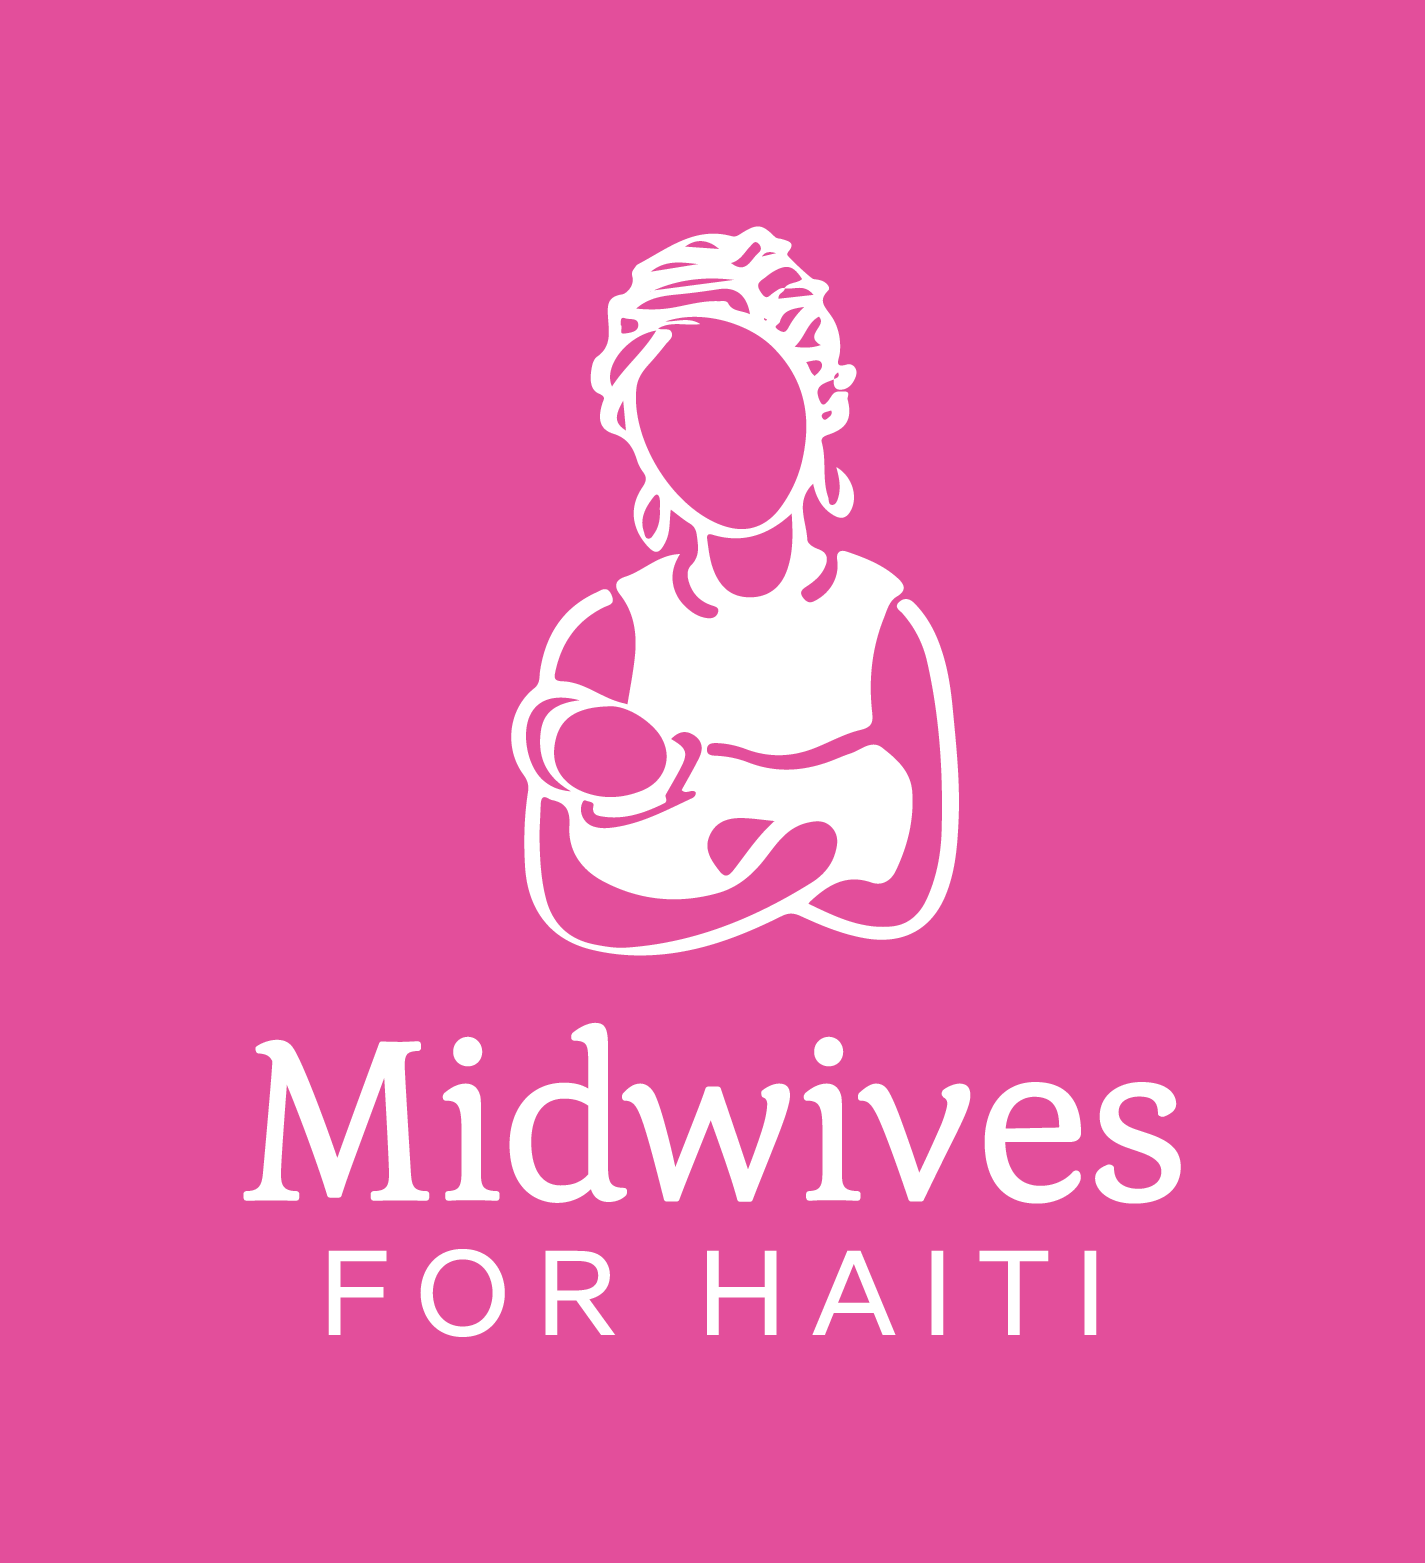 Midwives for Haiti.png